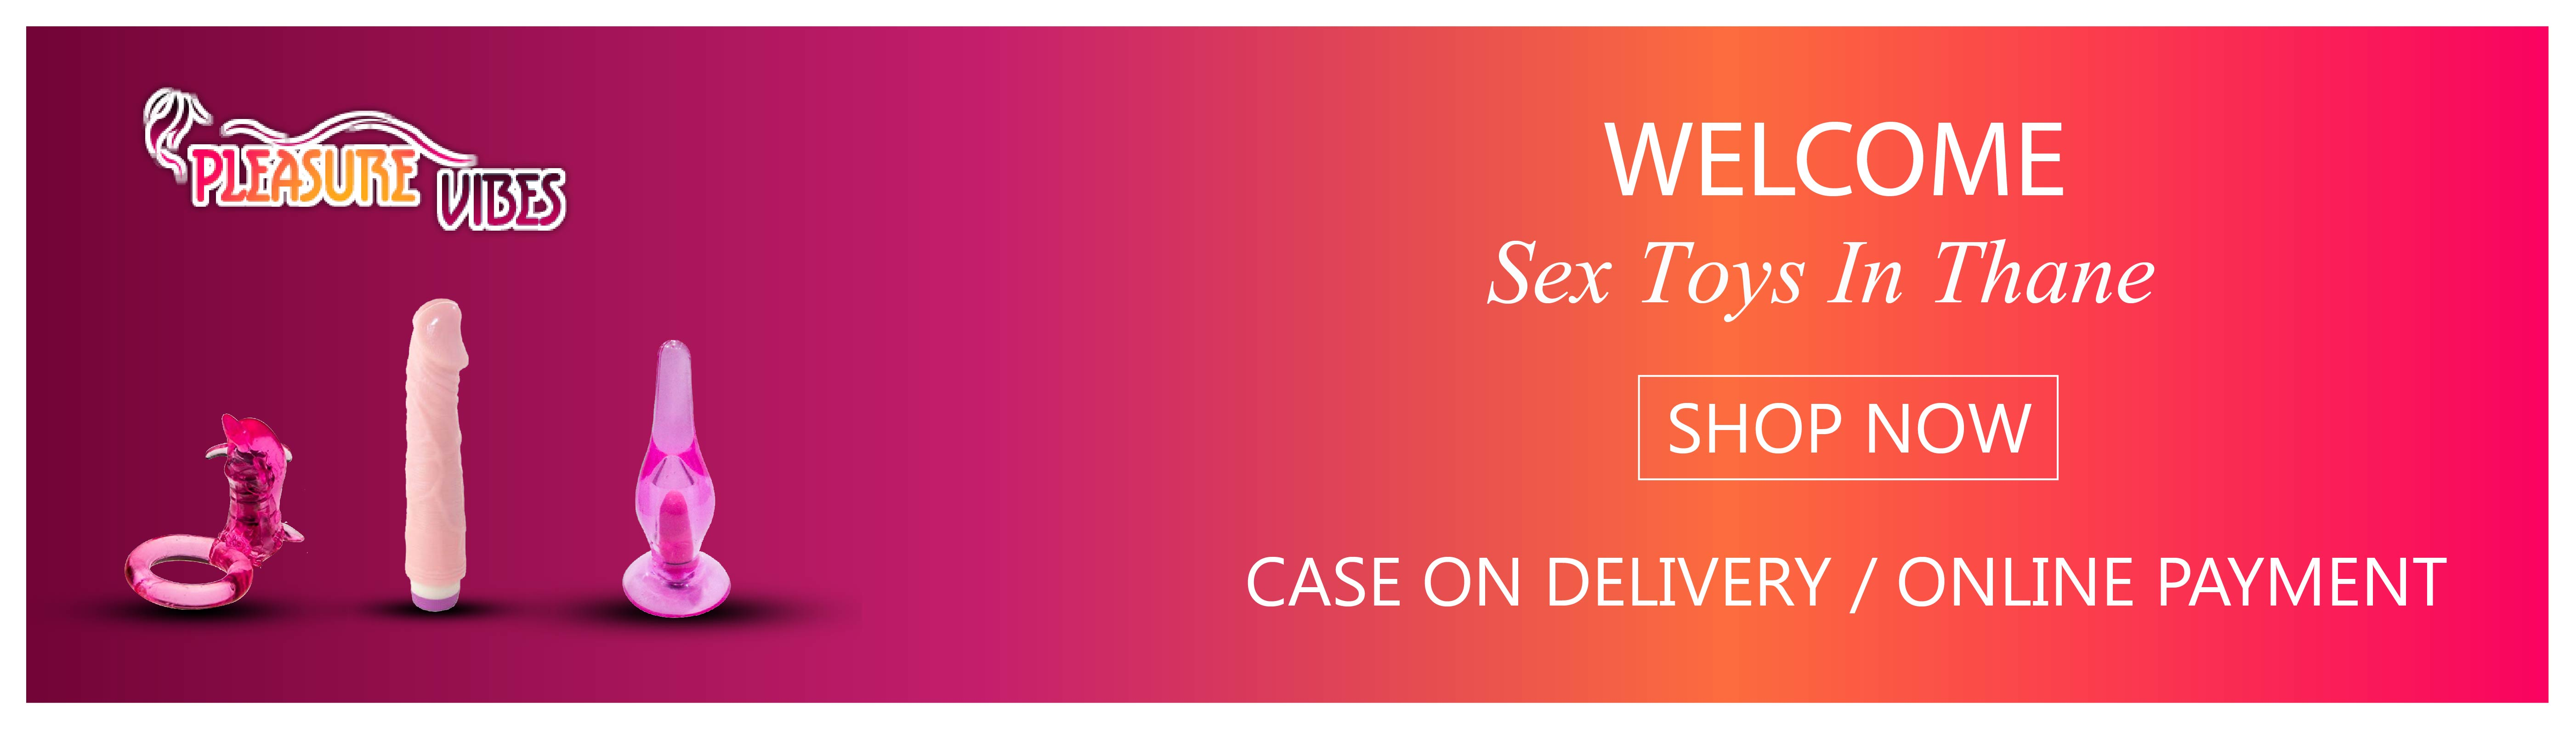 Sex toys in Thane - Partners in love will have a plethora of choices to make among the couple sex toys in Kanpur. Right from having lovemaking furniture to anal